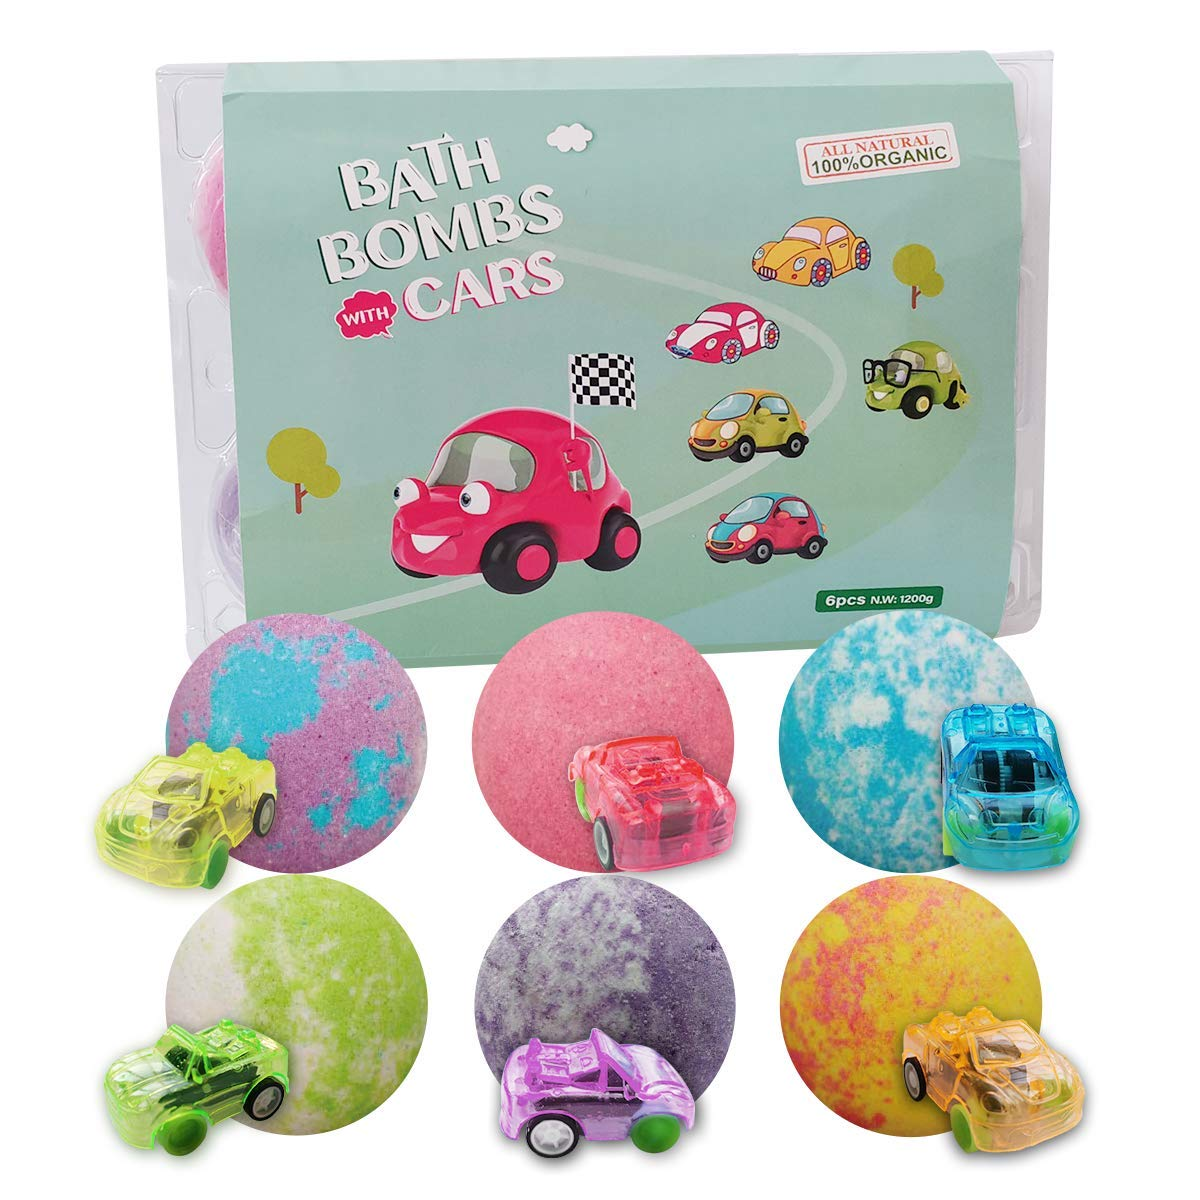 CF Natural Daily Cars Bath Bomb Gift Set with Pull-Back Cars Inside